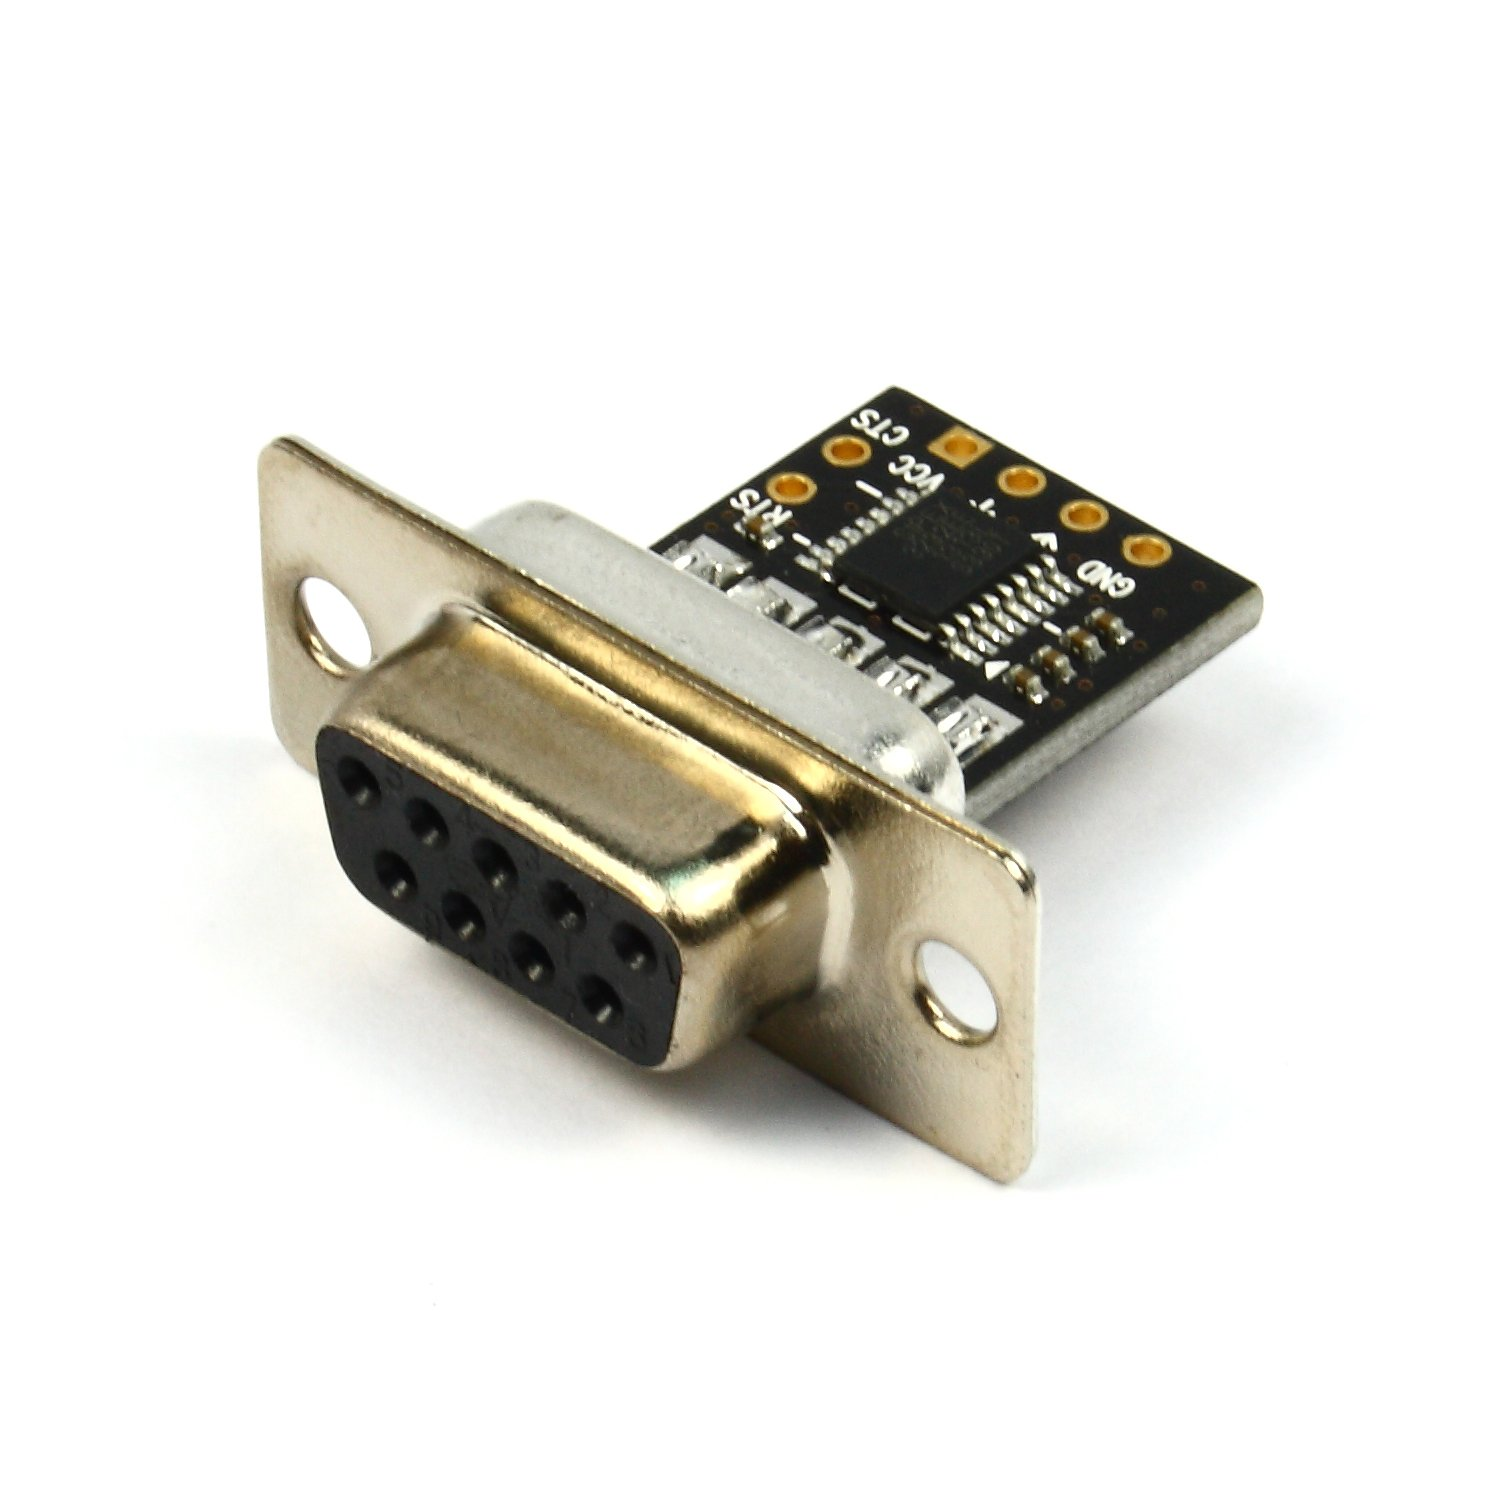 NulSom Inc. Ultra Compact RS232 to TTL Converter with Female DB9 and Hood Kit (3.3V to 5V) by NulSom Inc. (Image #4)